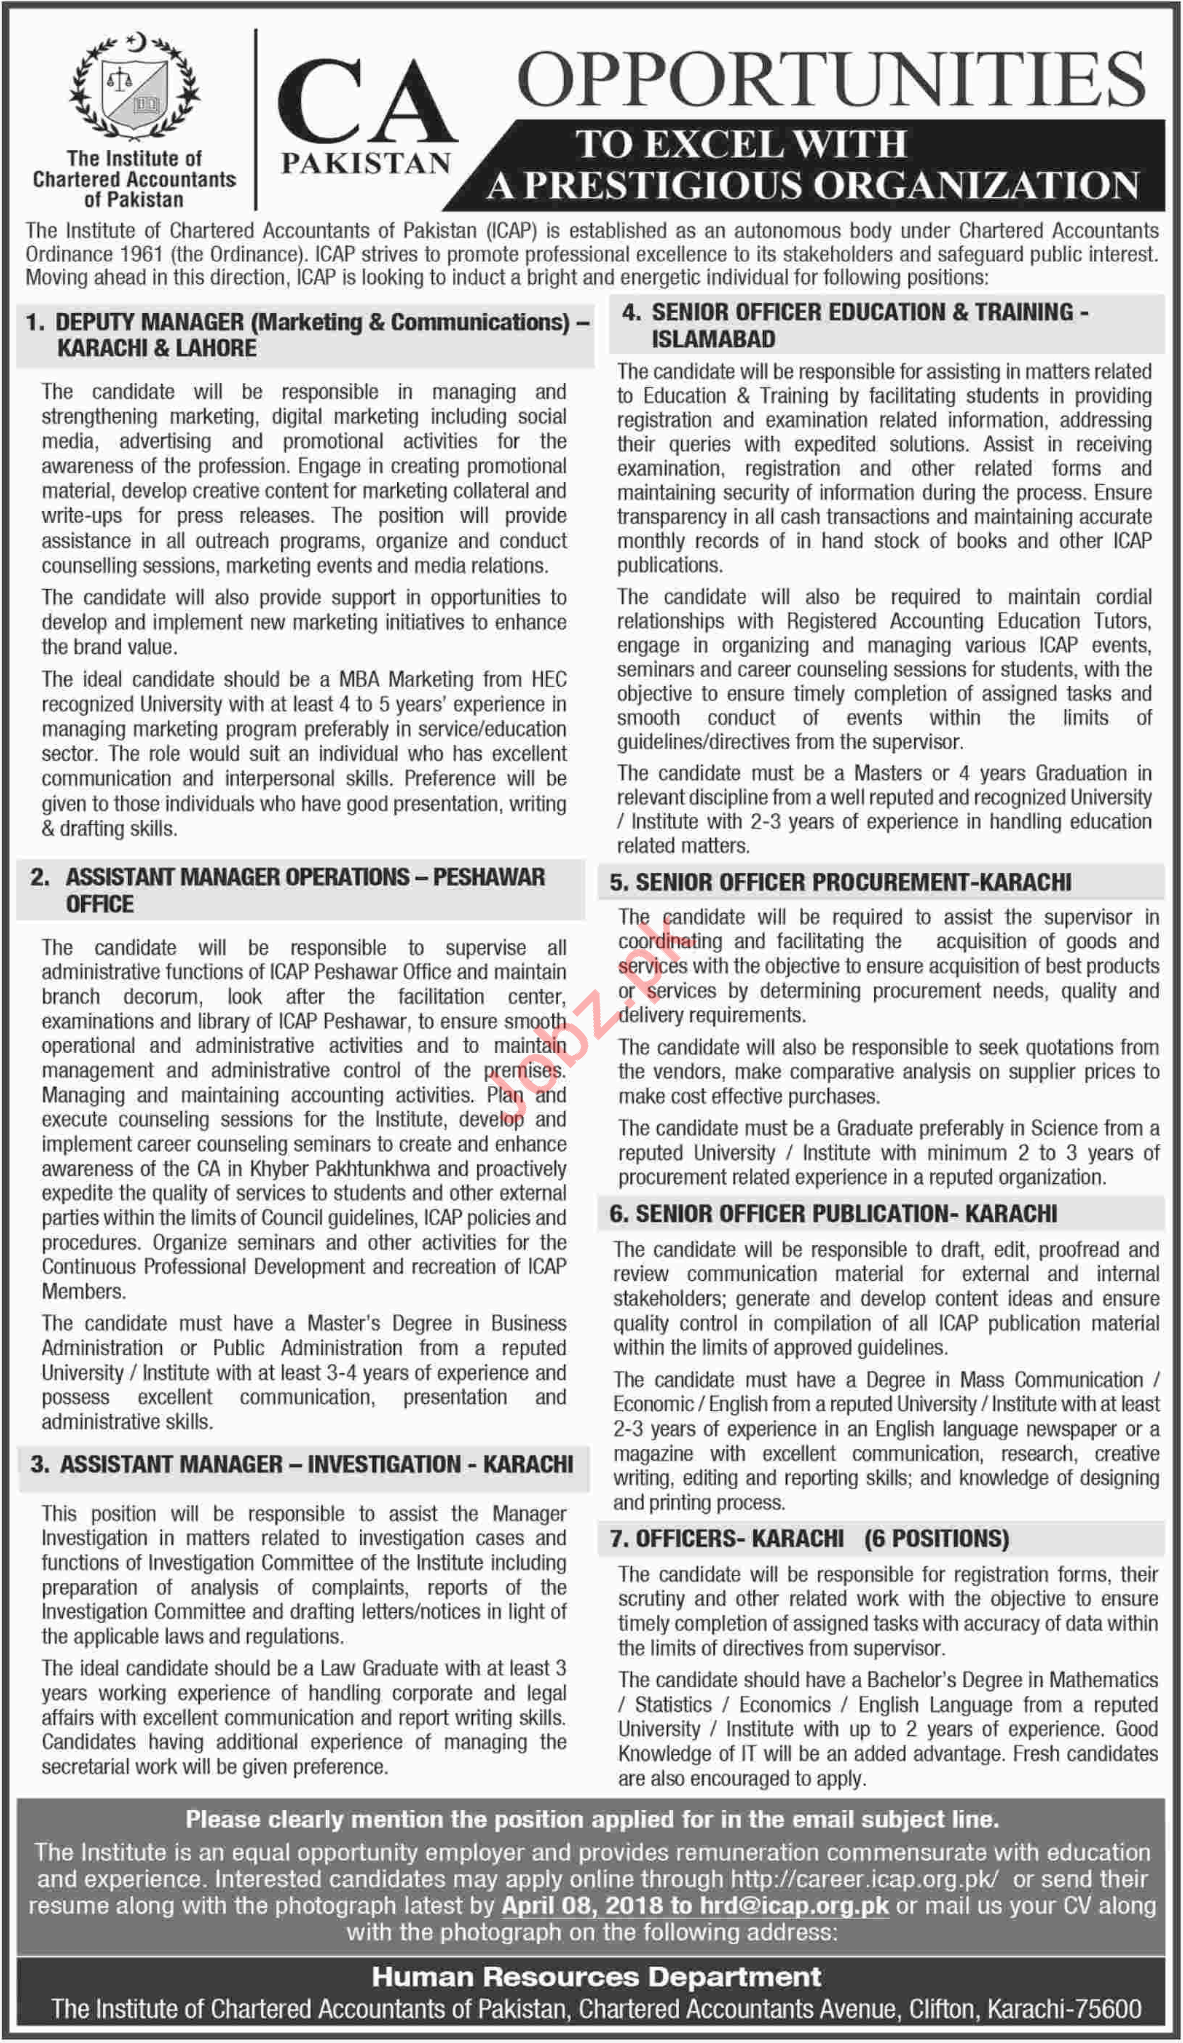 The Institute of Charted Accountants pf Pakistan CA Jobs